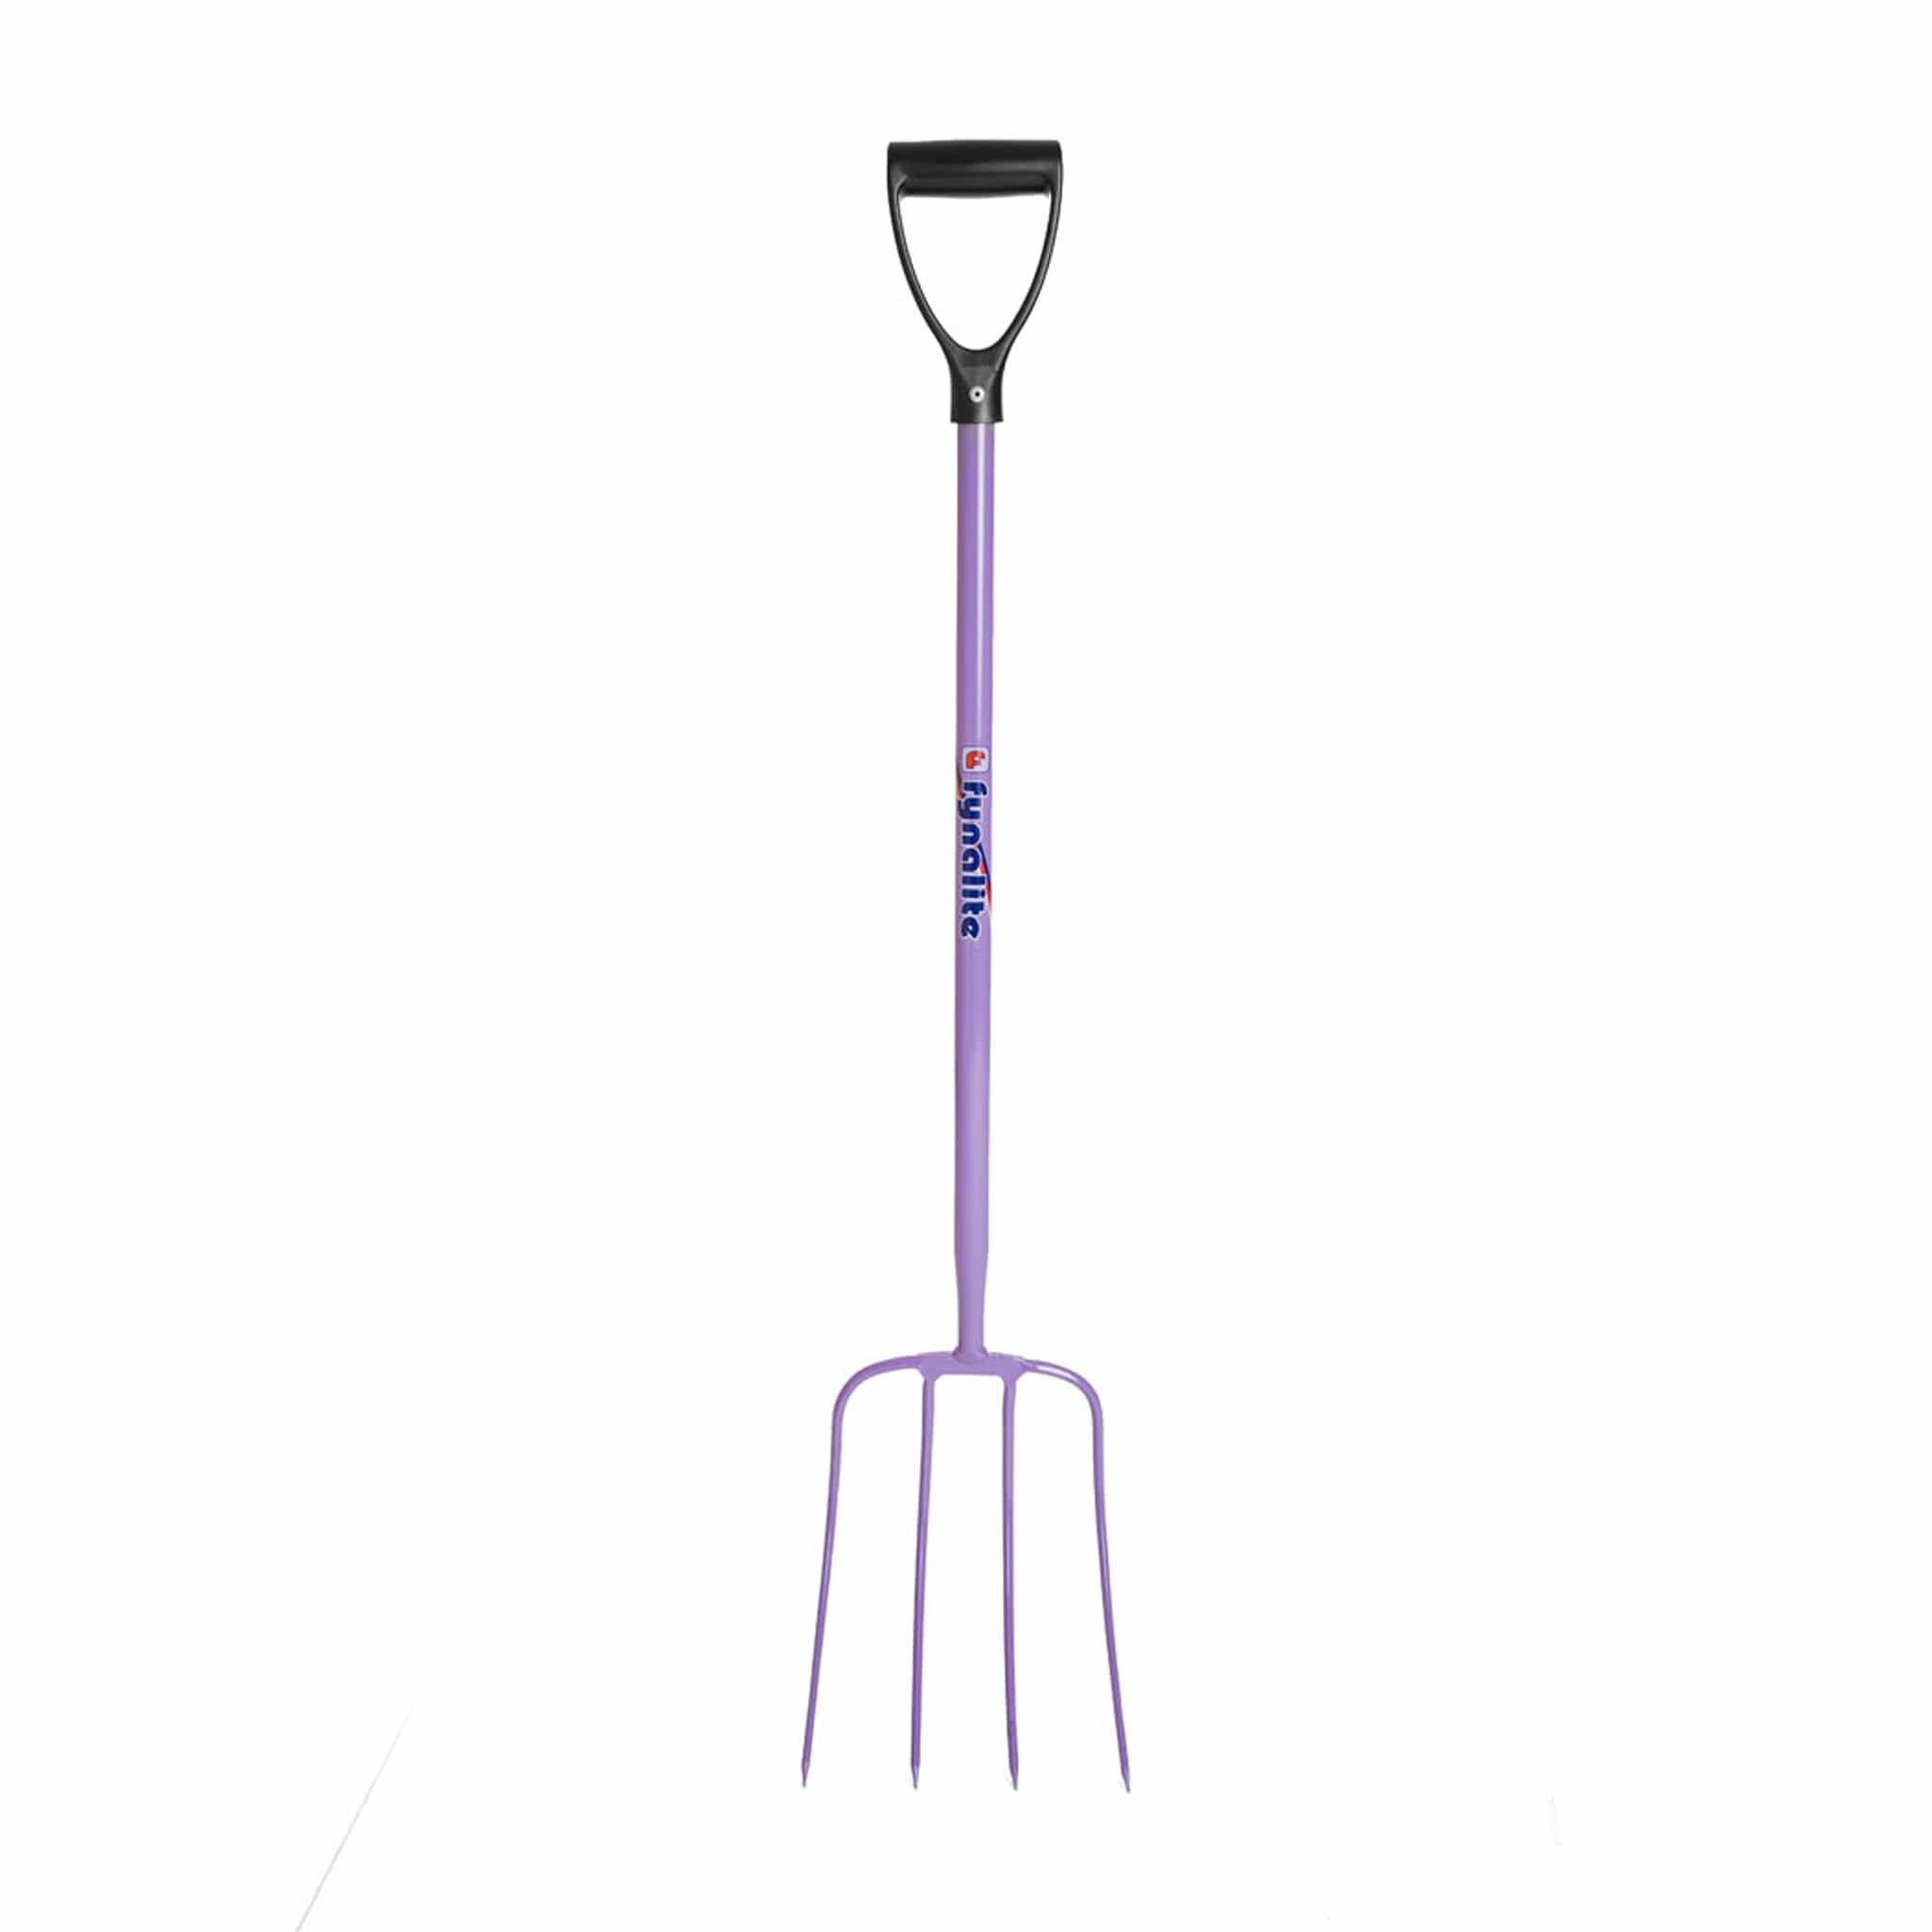 Fyna-Lite Manure Fork Purple 4 Prong Head D Handle